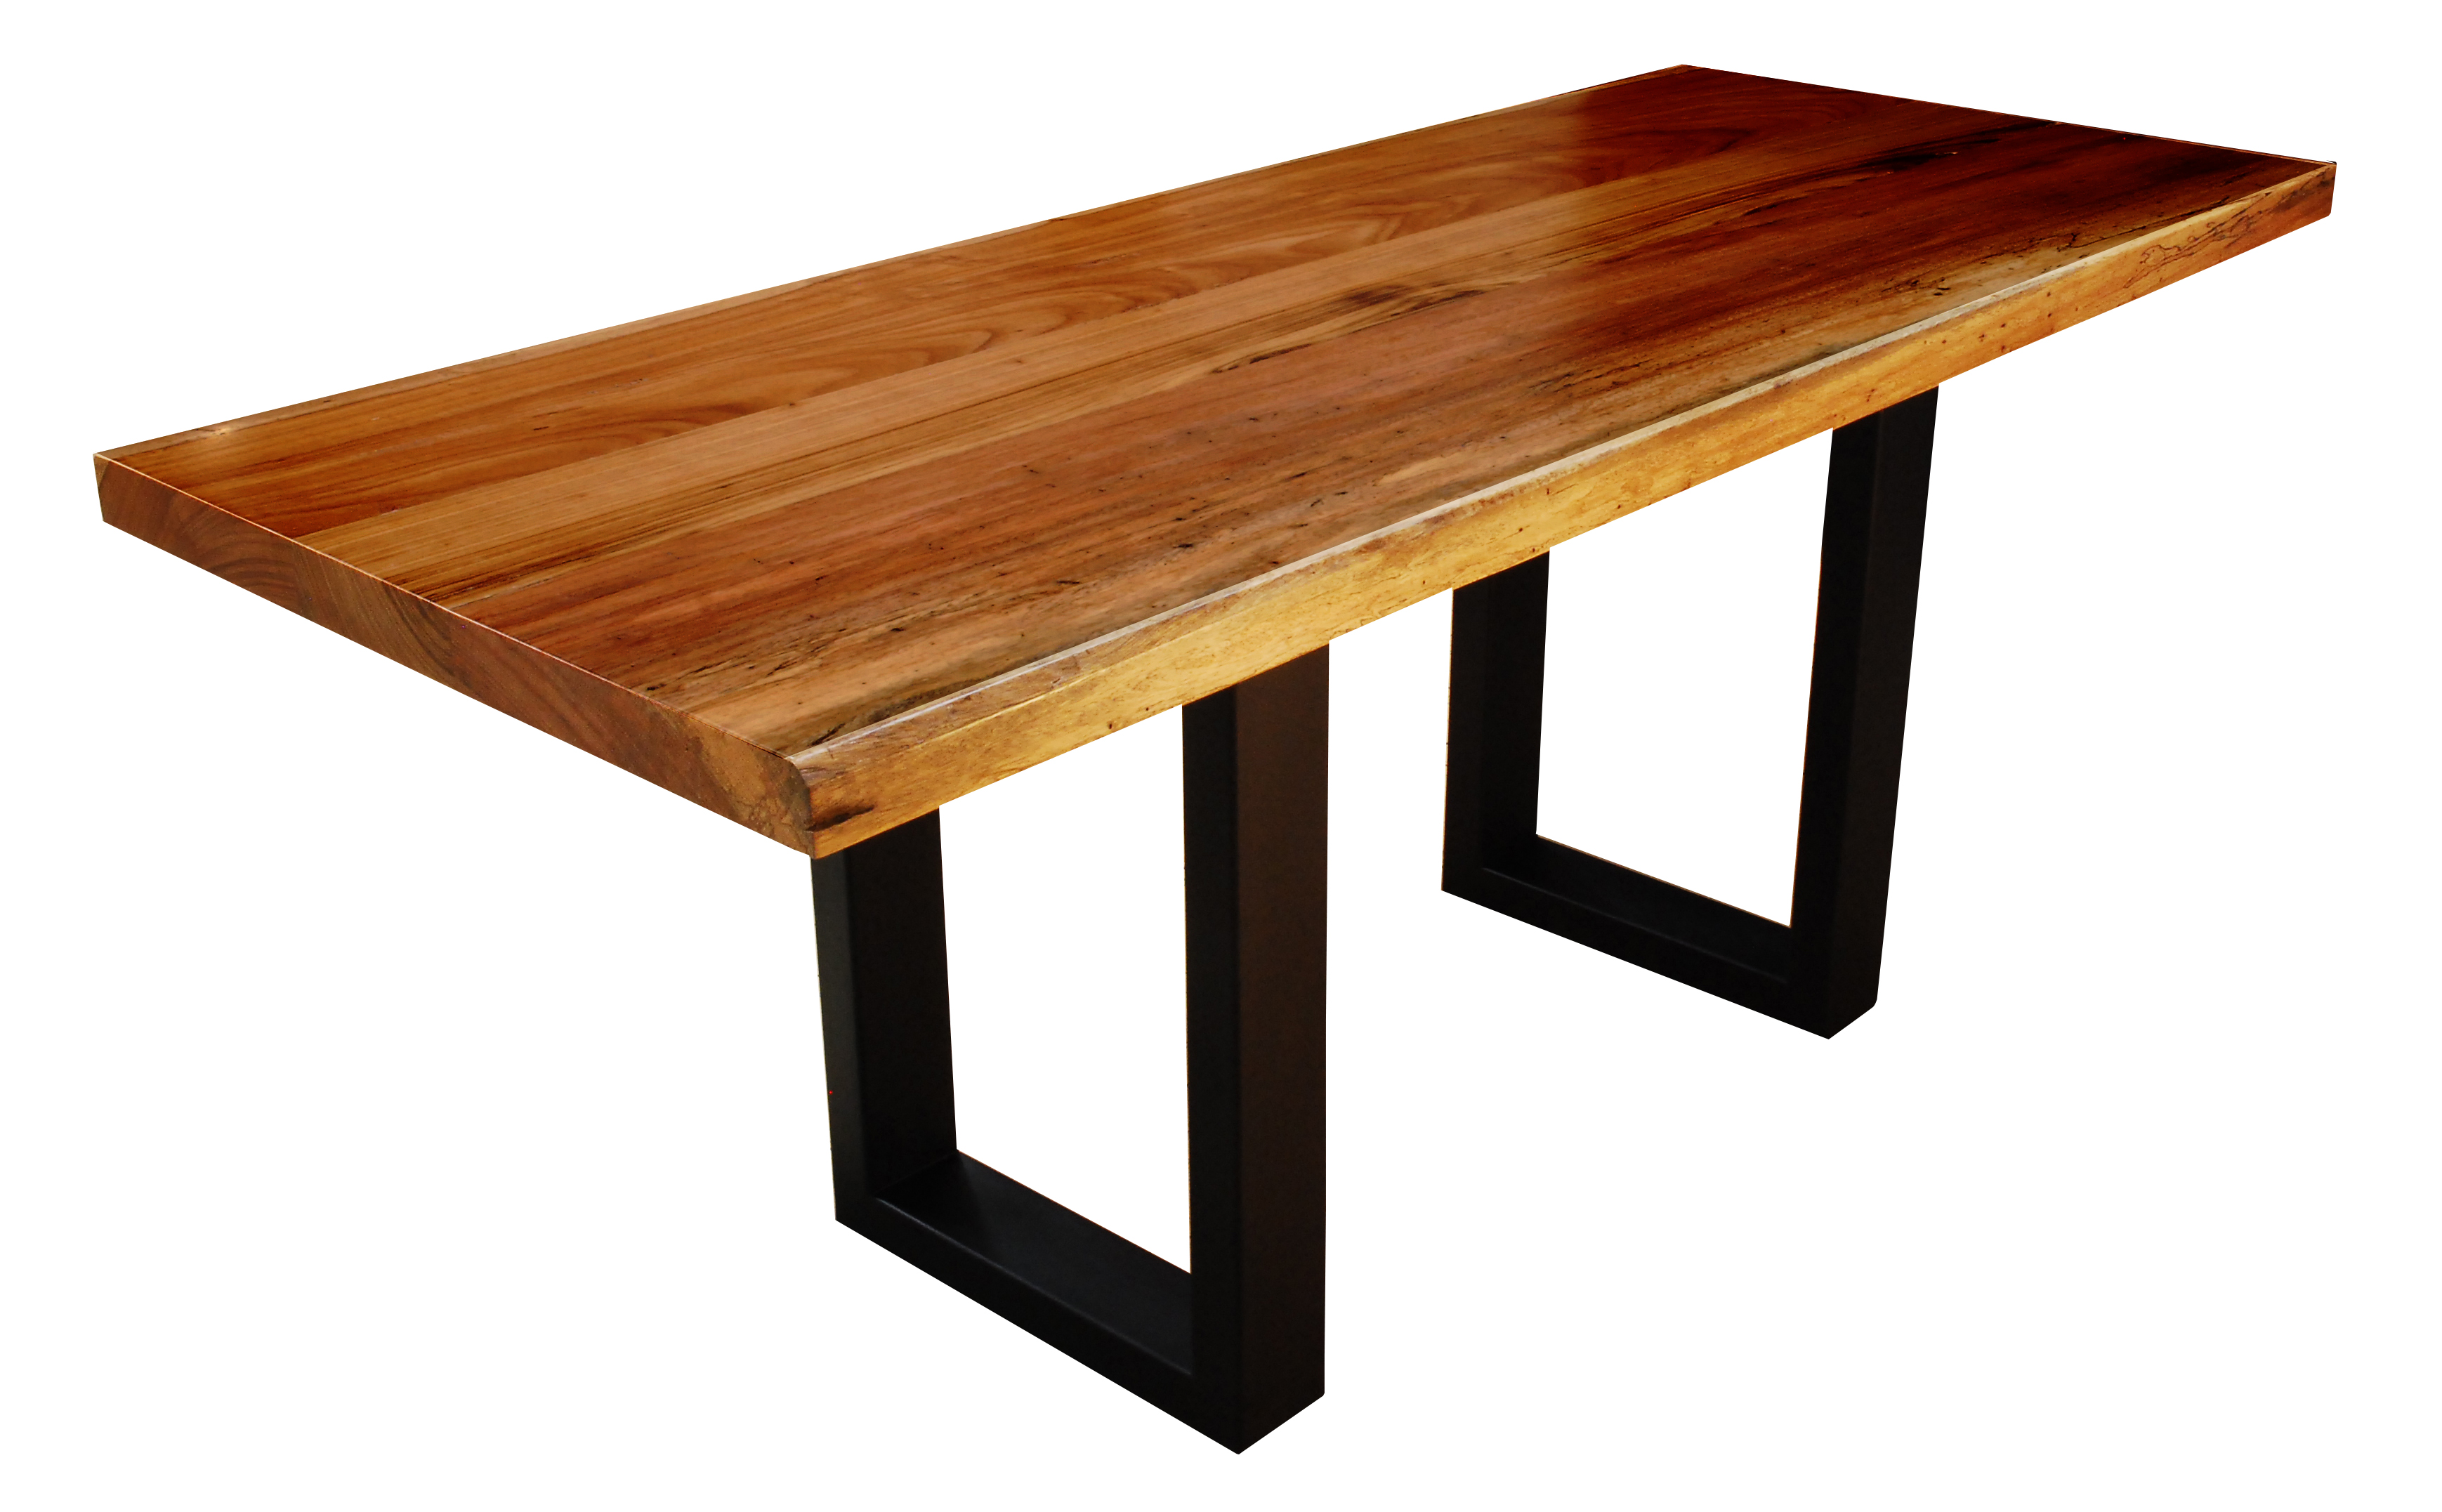 C F Kent Contract Furniture Manufacturer 062215 448a